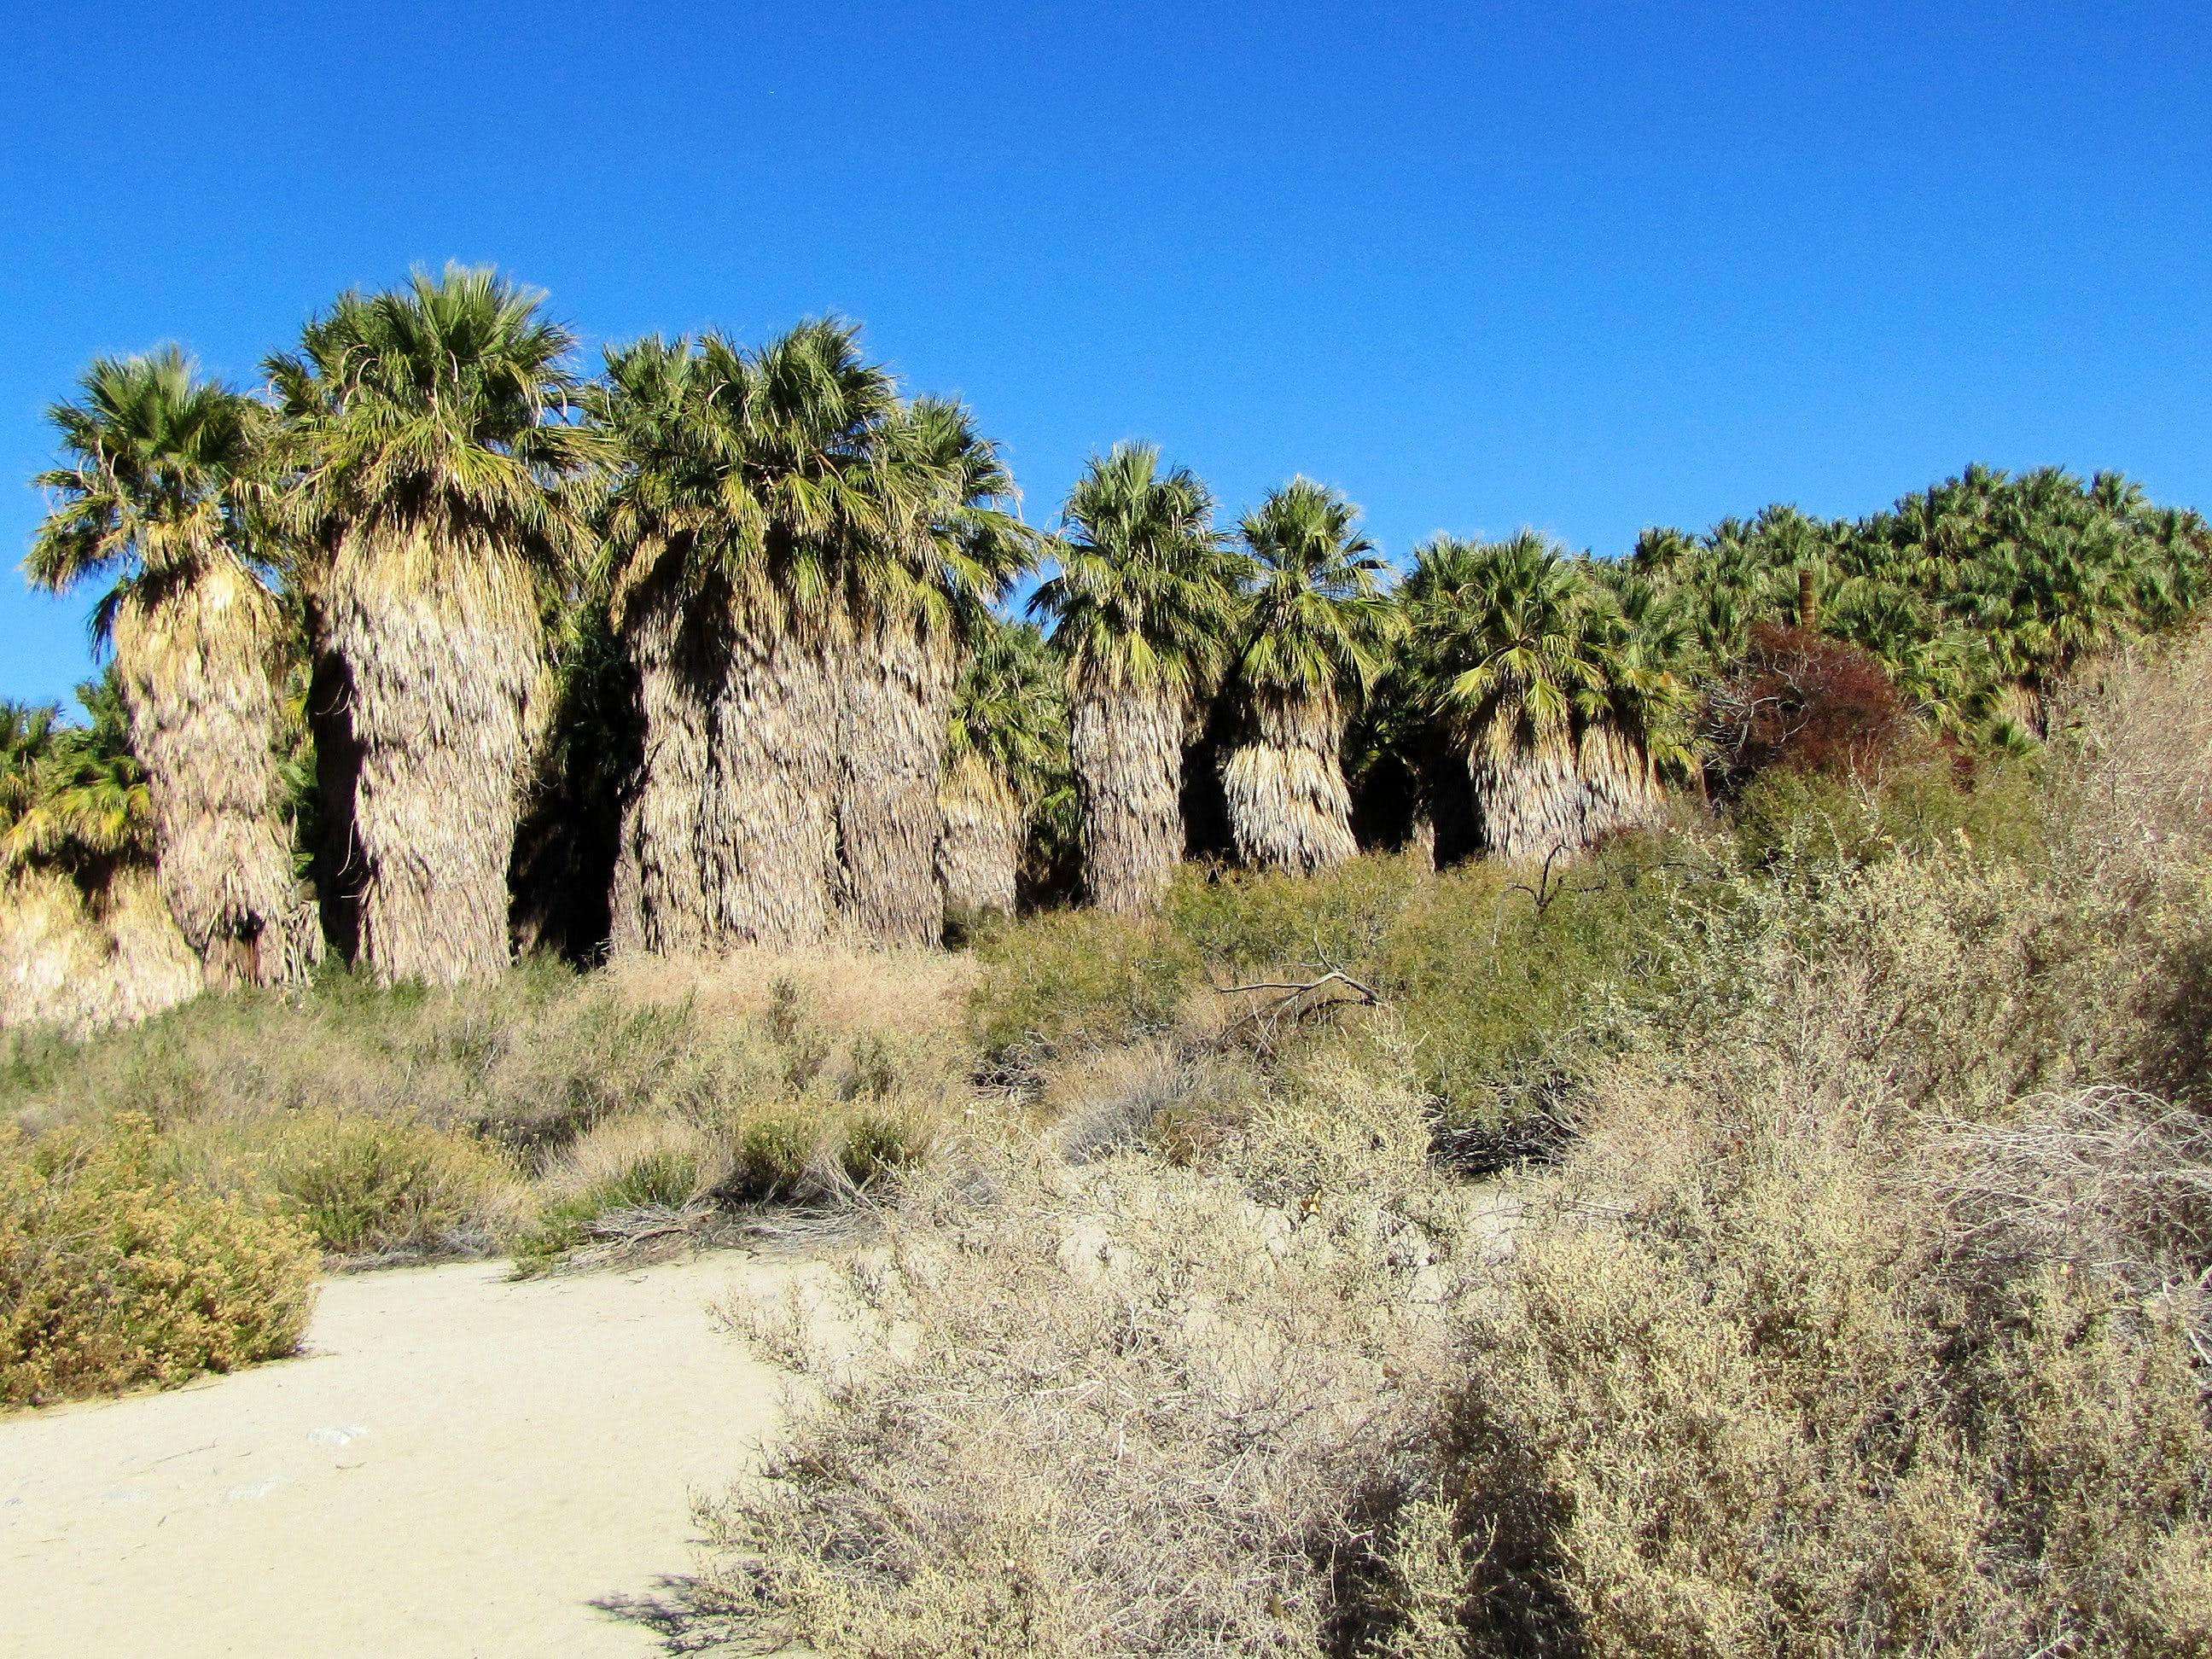 Coachella Valley Preserve, 1000 Palms Oasis